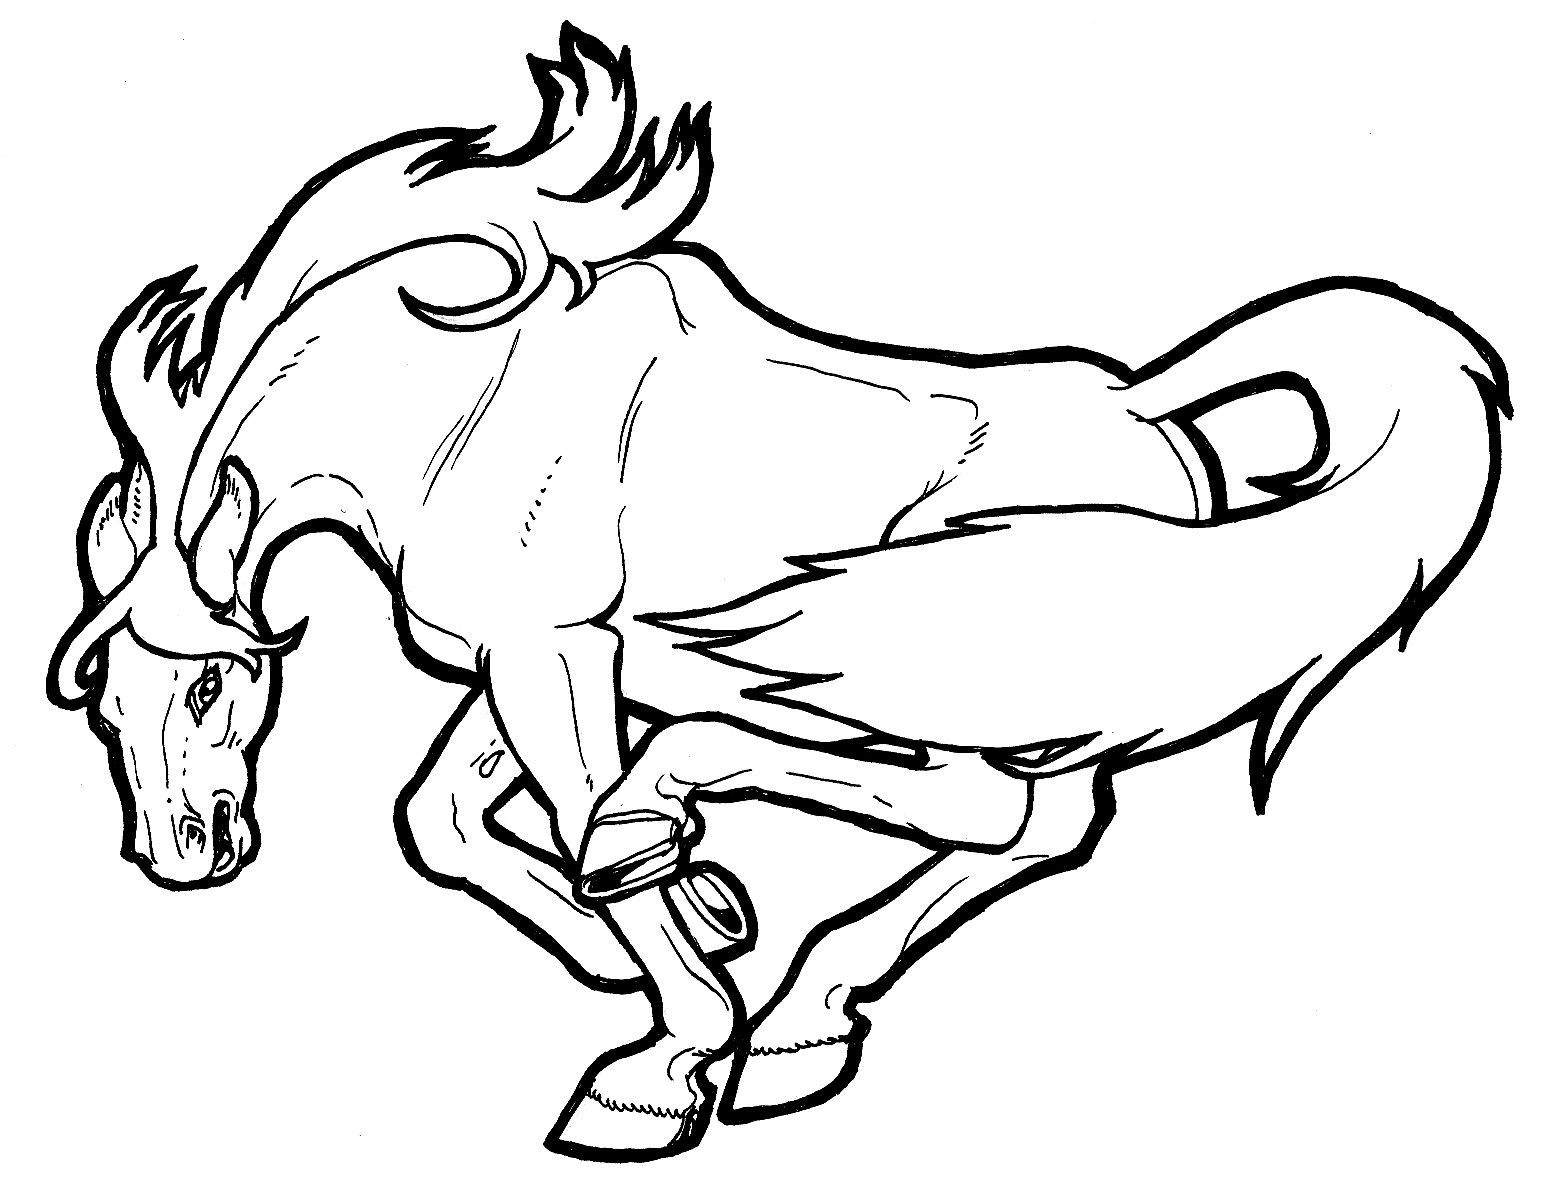 wild mustang coloring pages wyoming wildlife wild mustang horse animal printable adult coloring pages mustang wild